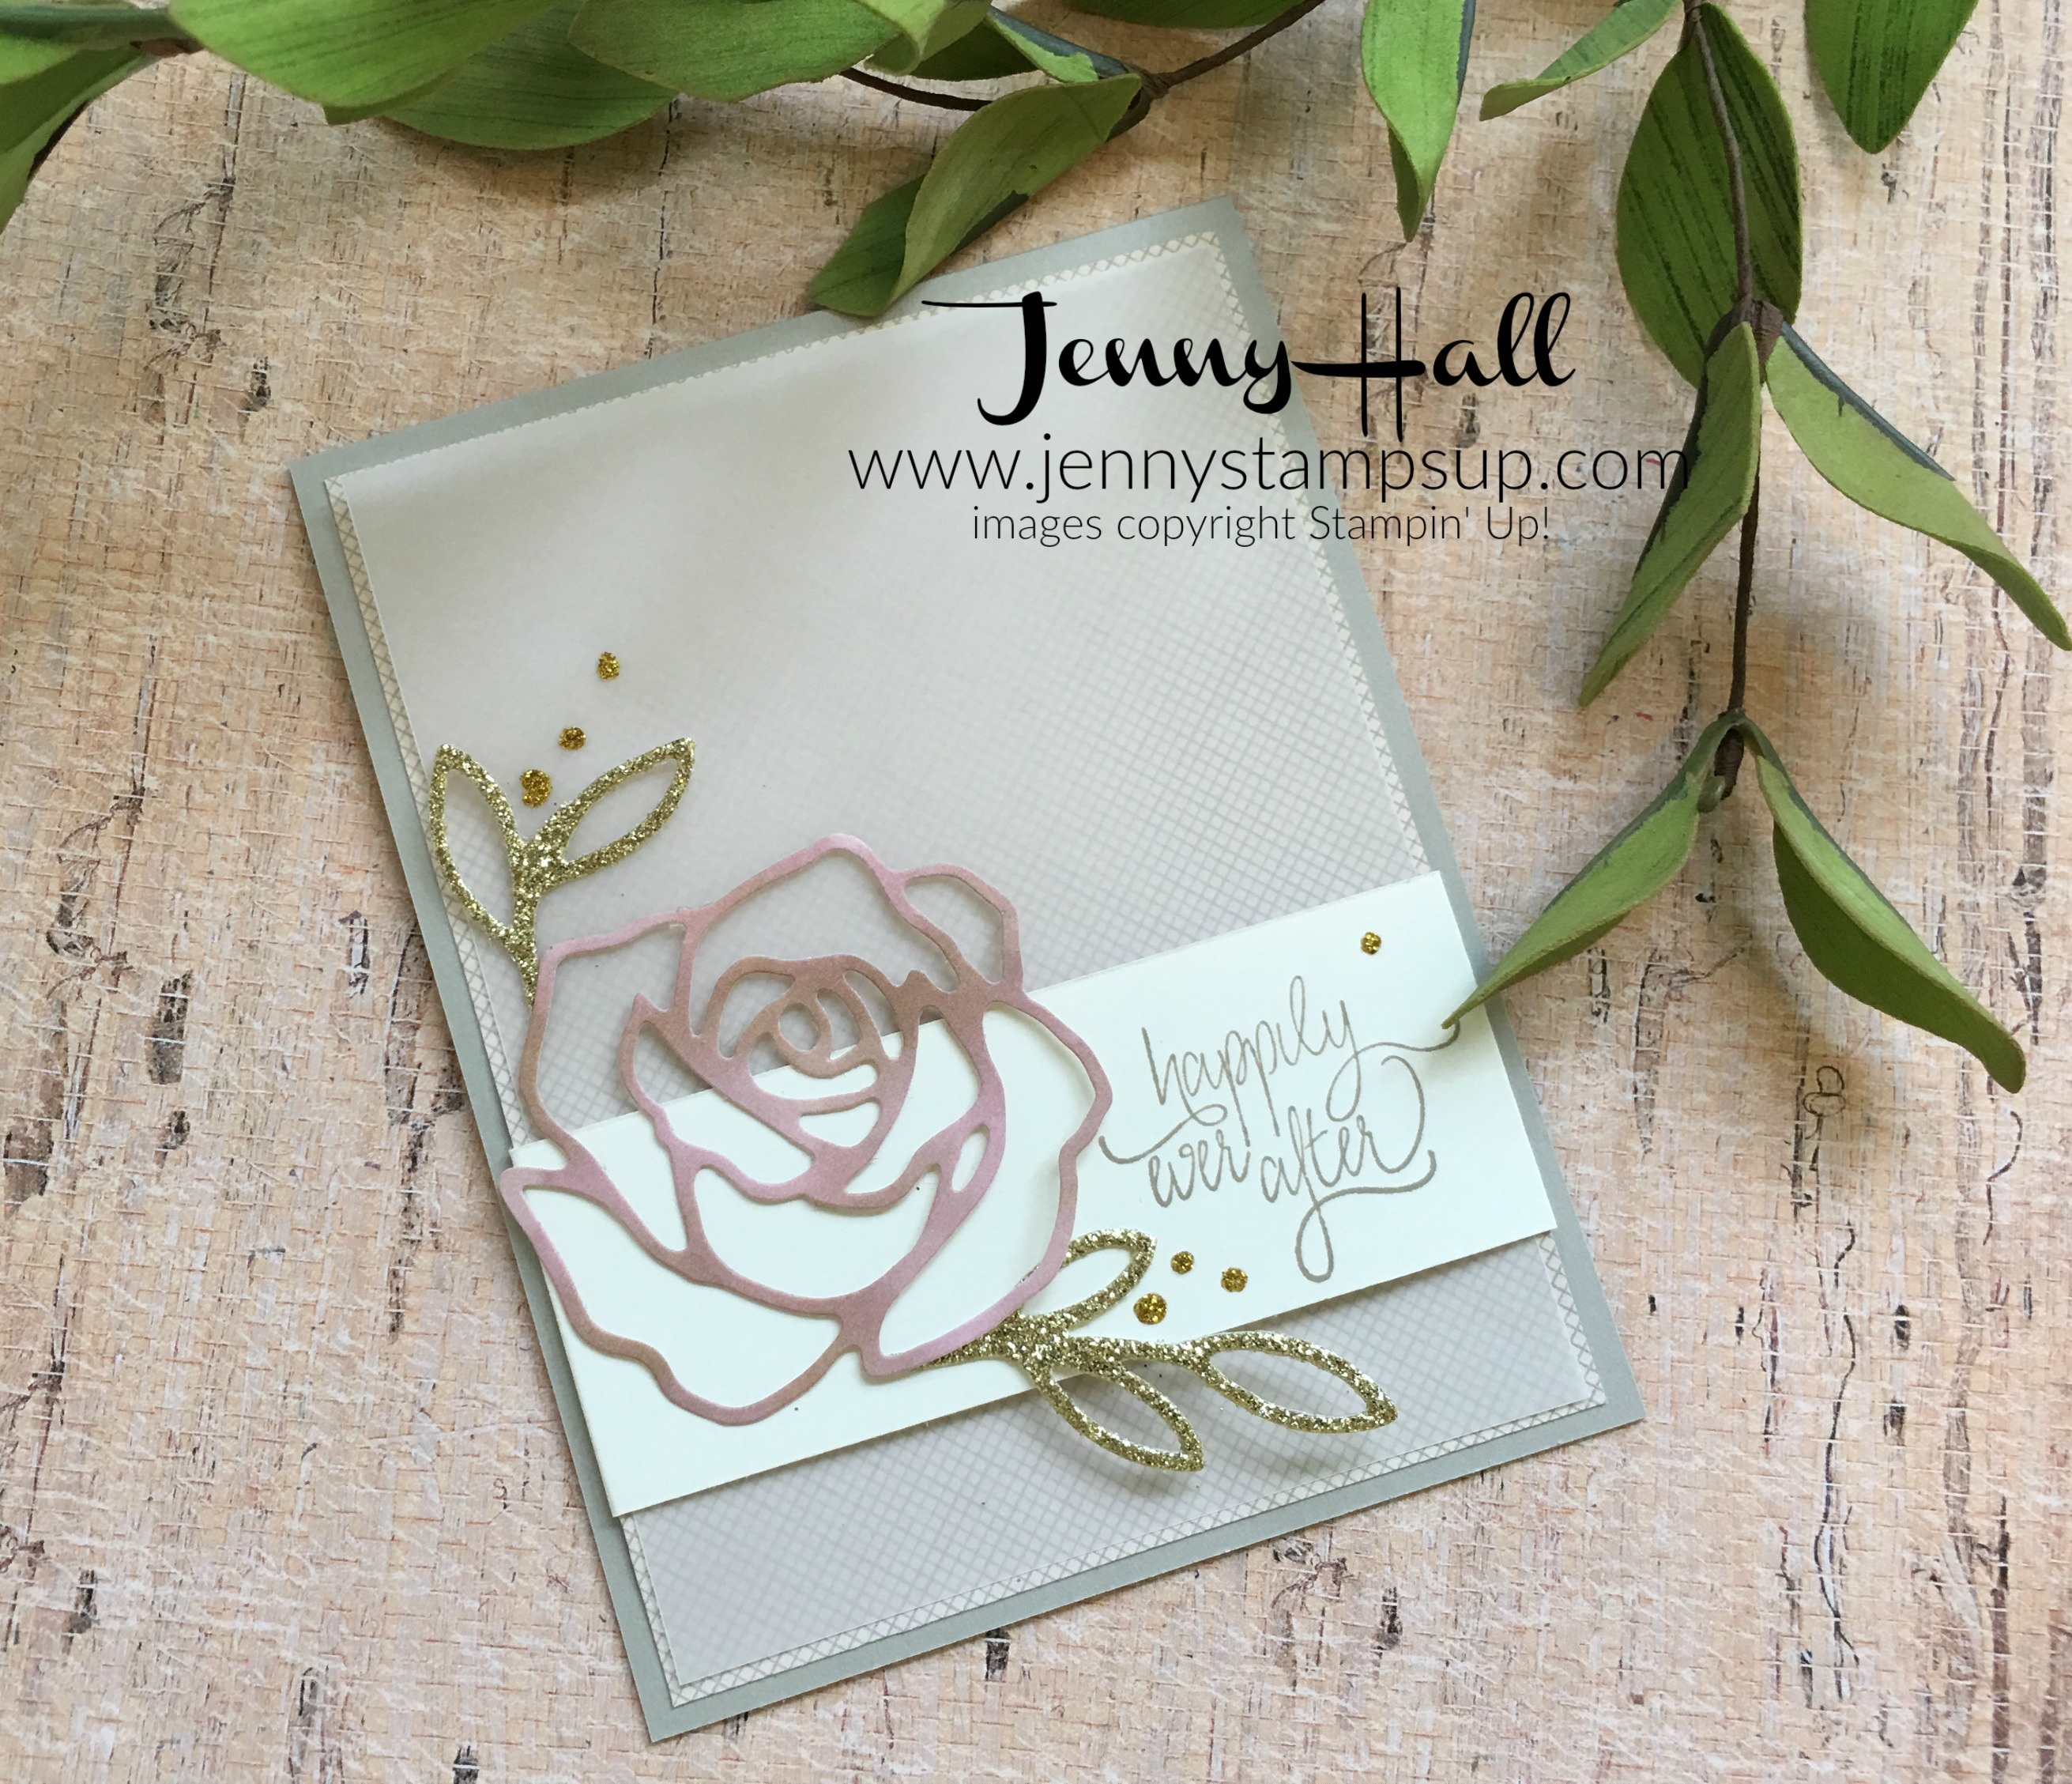 Patterned paper die cut card by Jenny Hall at www.jennystampsup.com